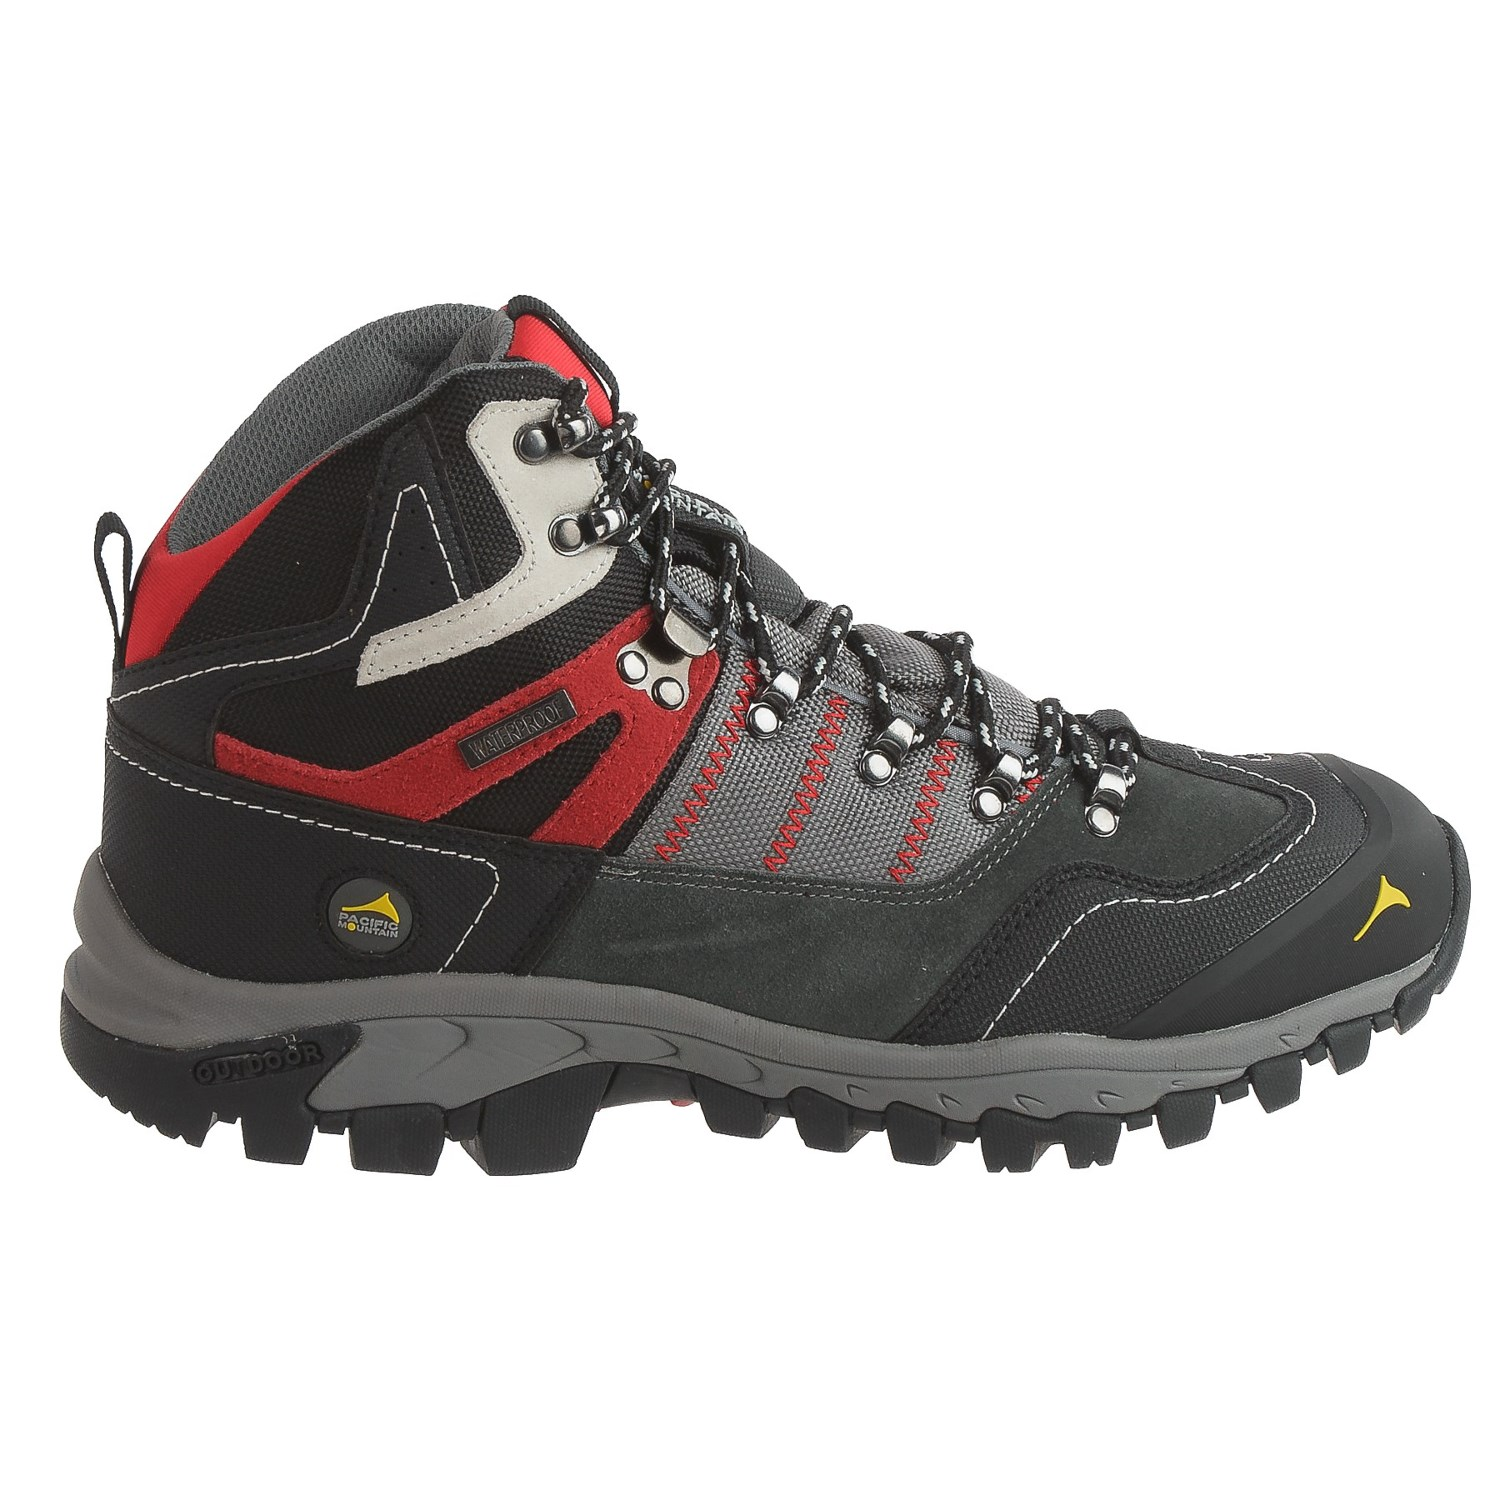 d0d54dbe934 Pacific Mountain Ascend Mid Hiking Boots - Waterproof (For Men)